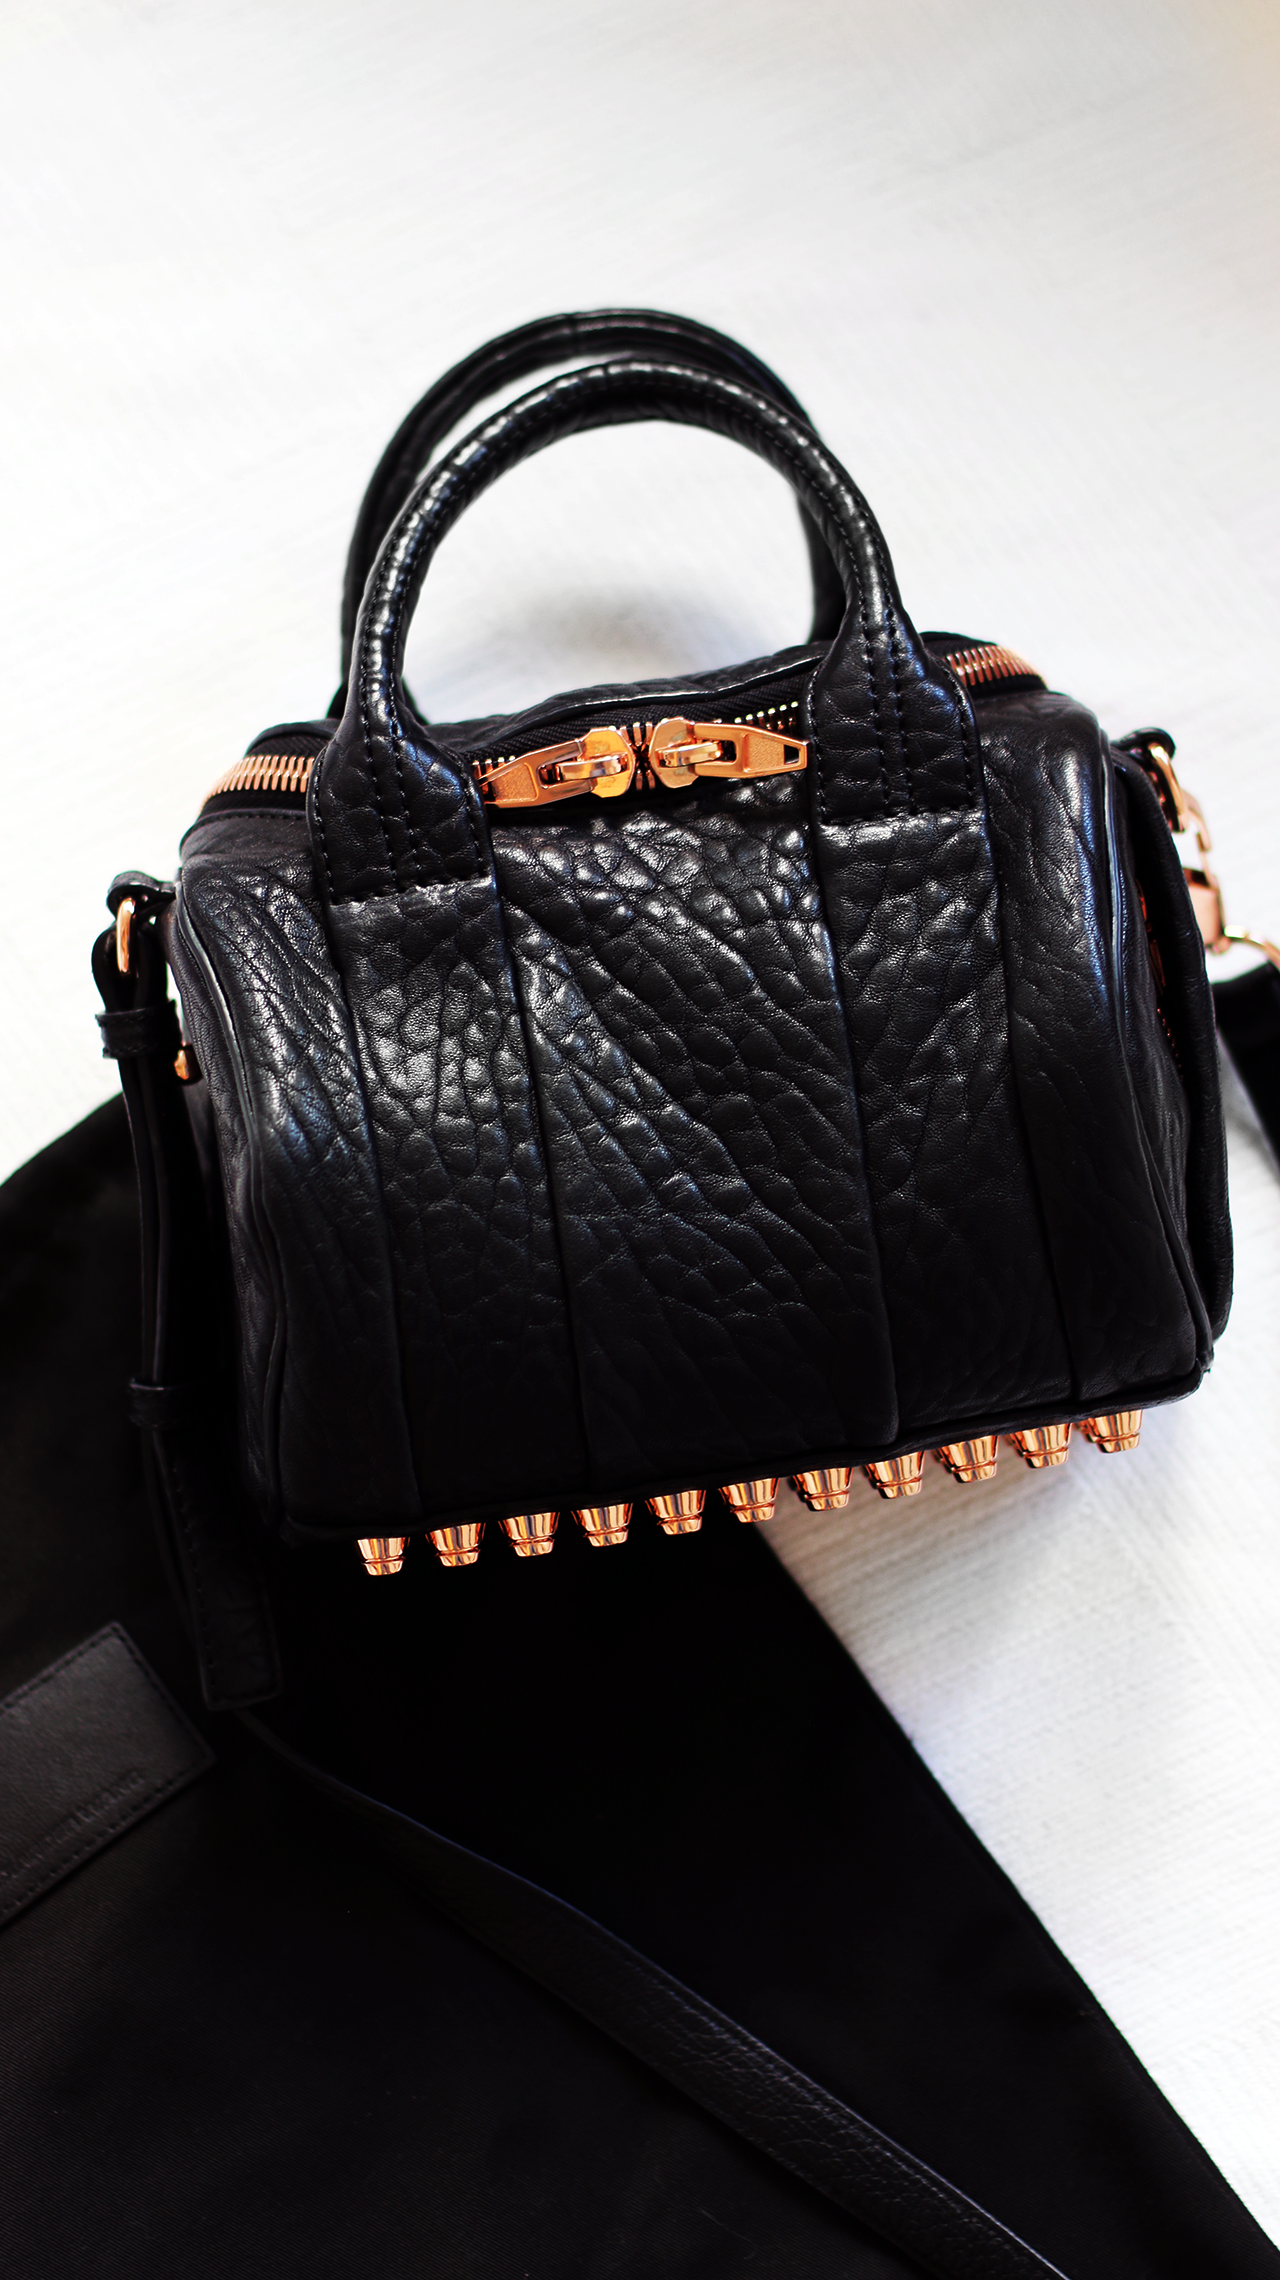 I M Finally Sharing My Thoughts About All Time Favorite Designer Bag With You